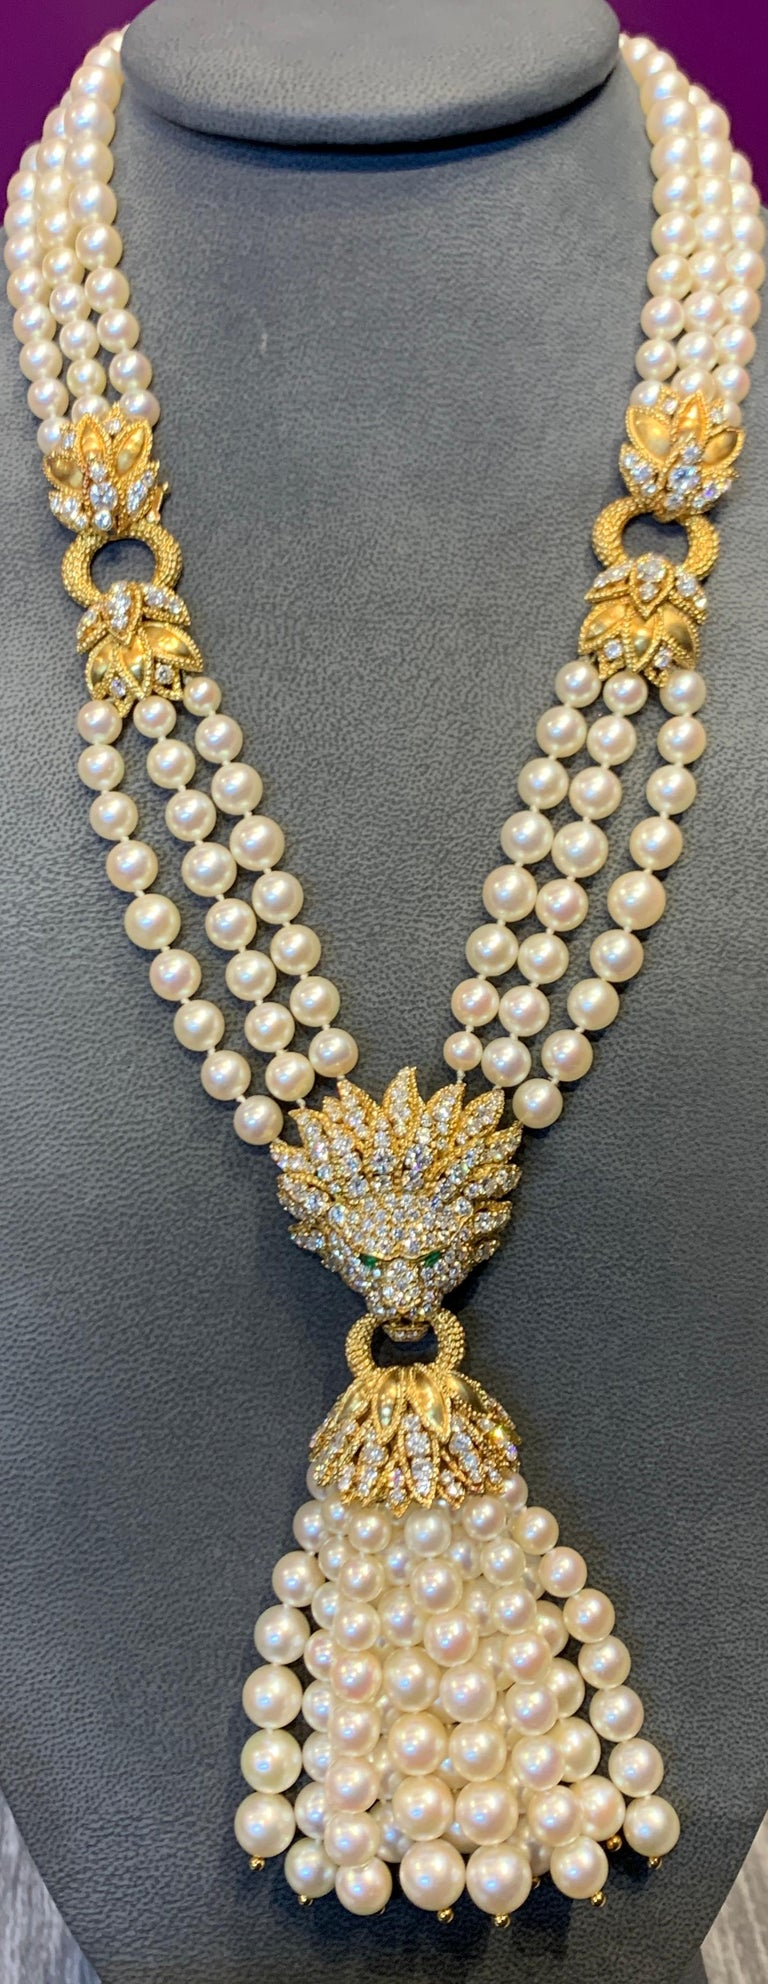 Iconic Van Cleef & Arpels Pearl and Diamond Lion Tassel Necklace For Sale 1